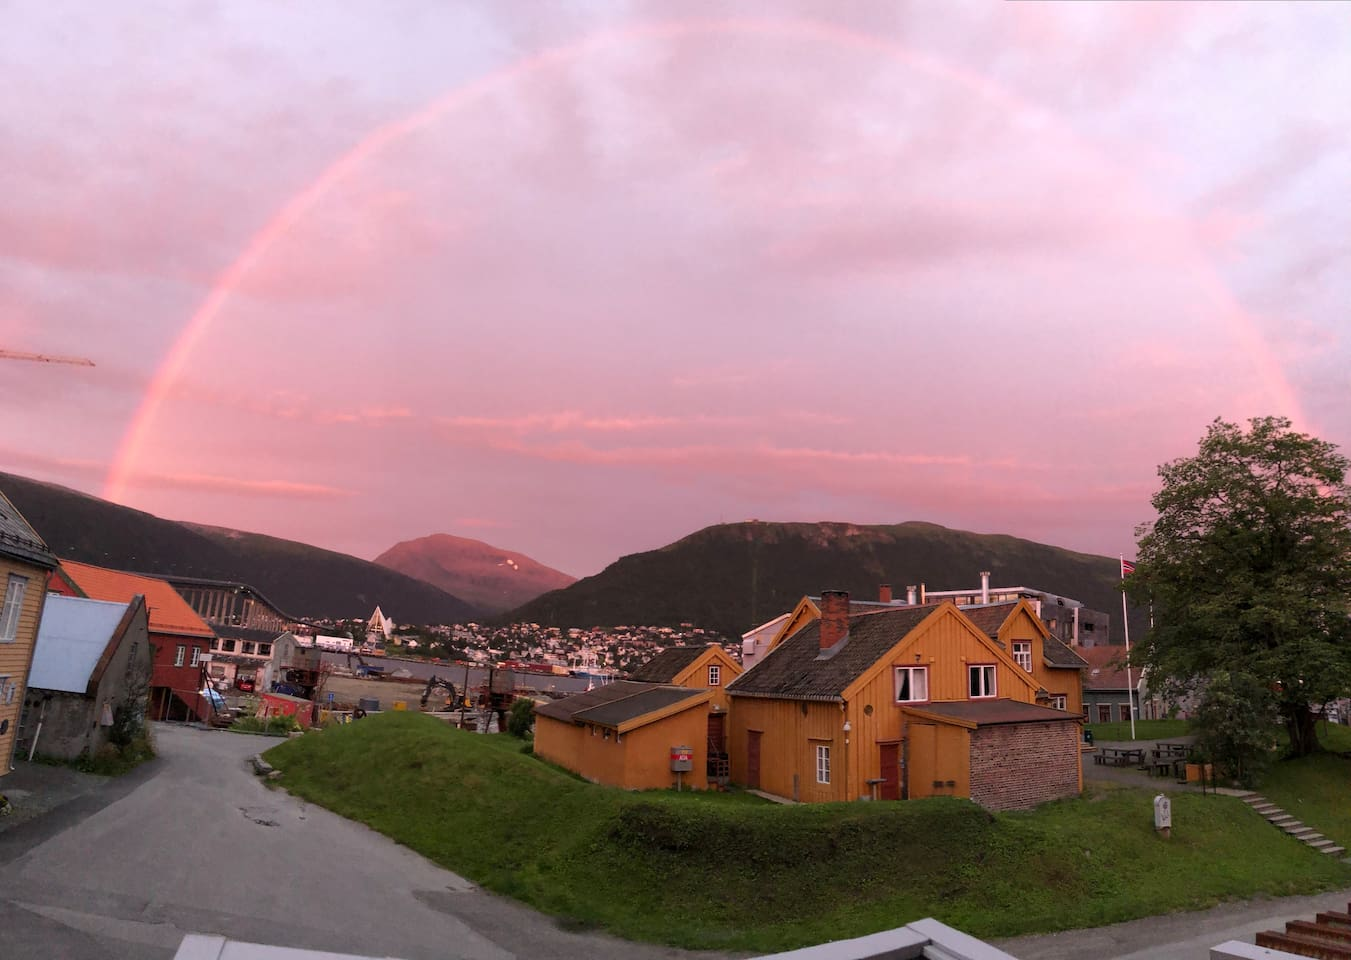 Pink sky+ rainbow . Catched from my window 18.08.2018 h22:35